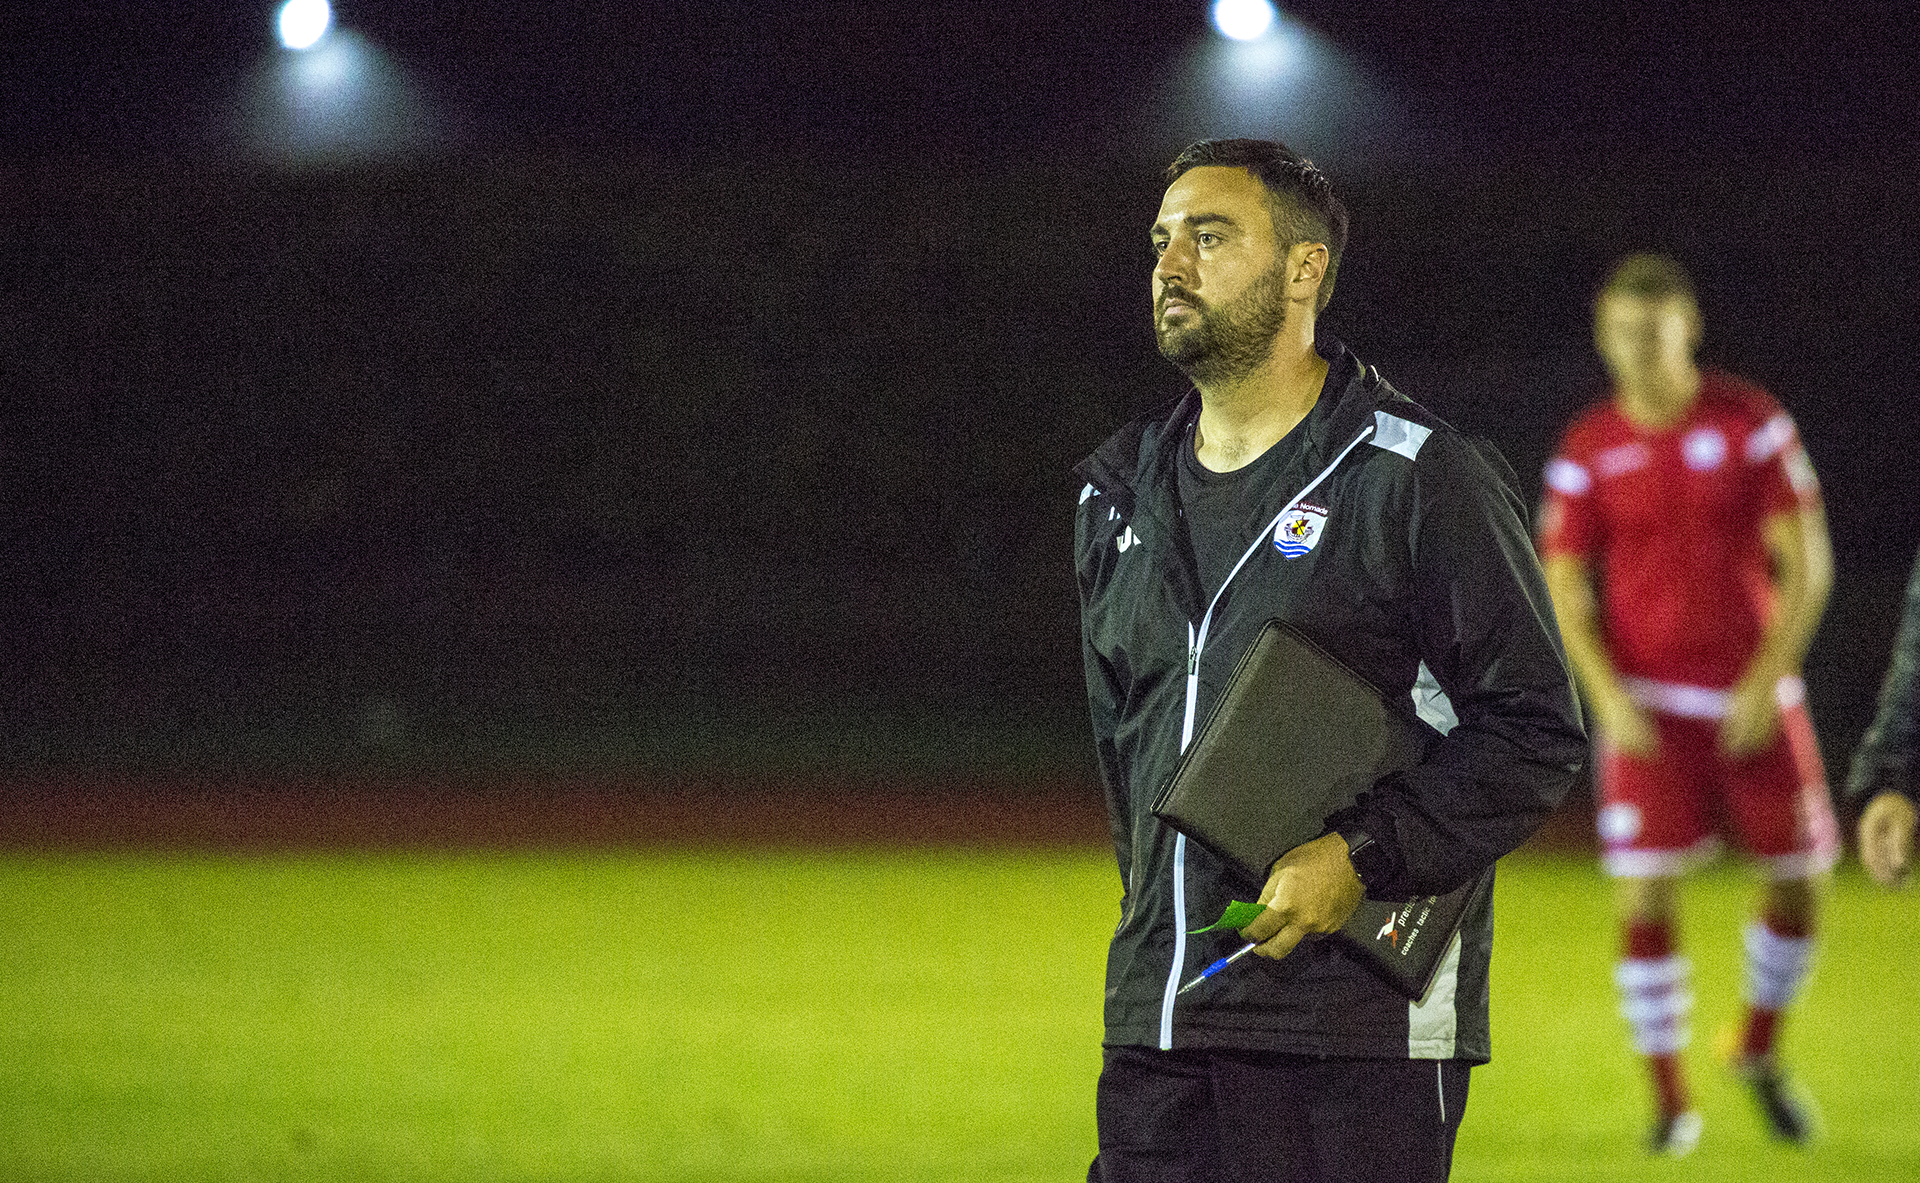 Jay Catton photographed at half time during The Nomads' match with Newtown © NCM Media